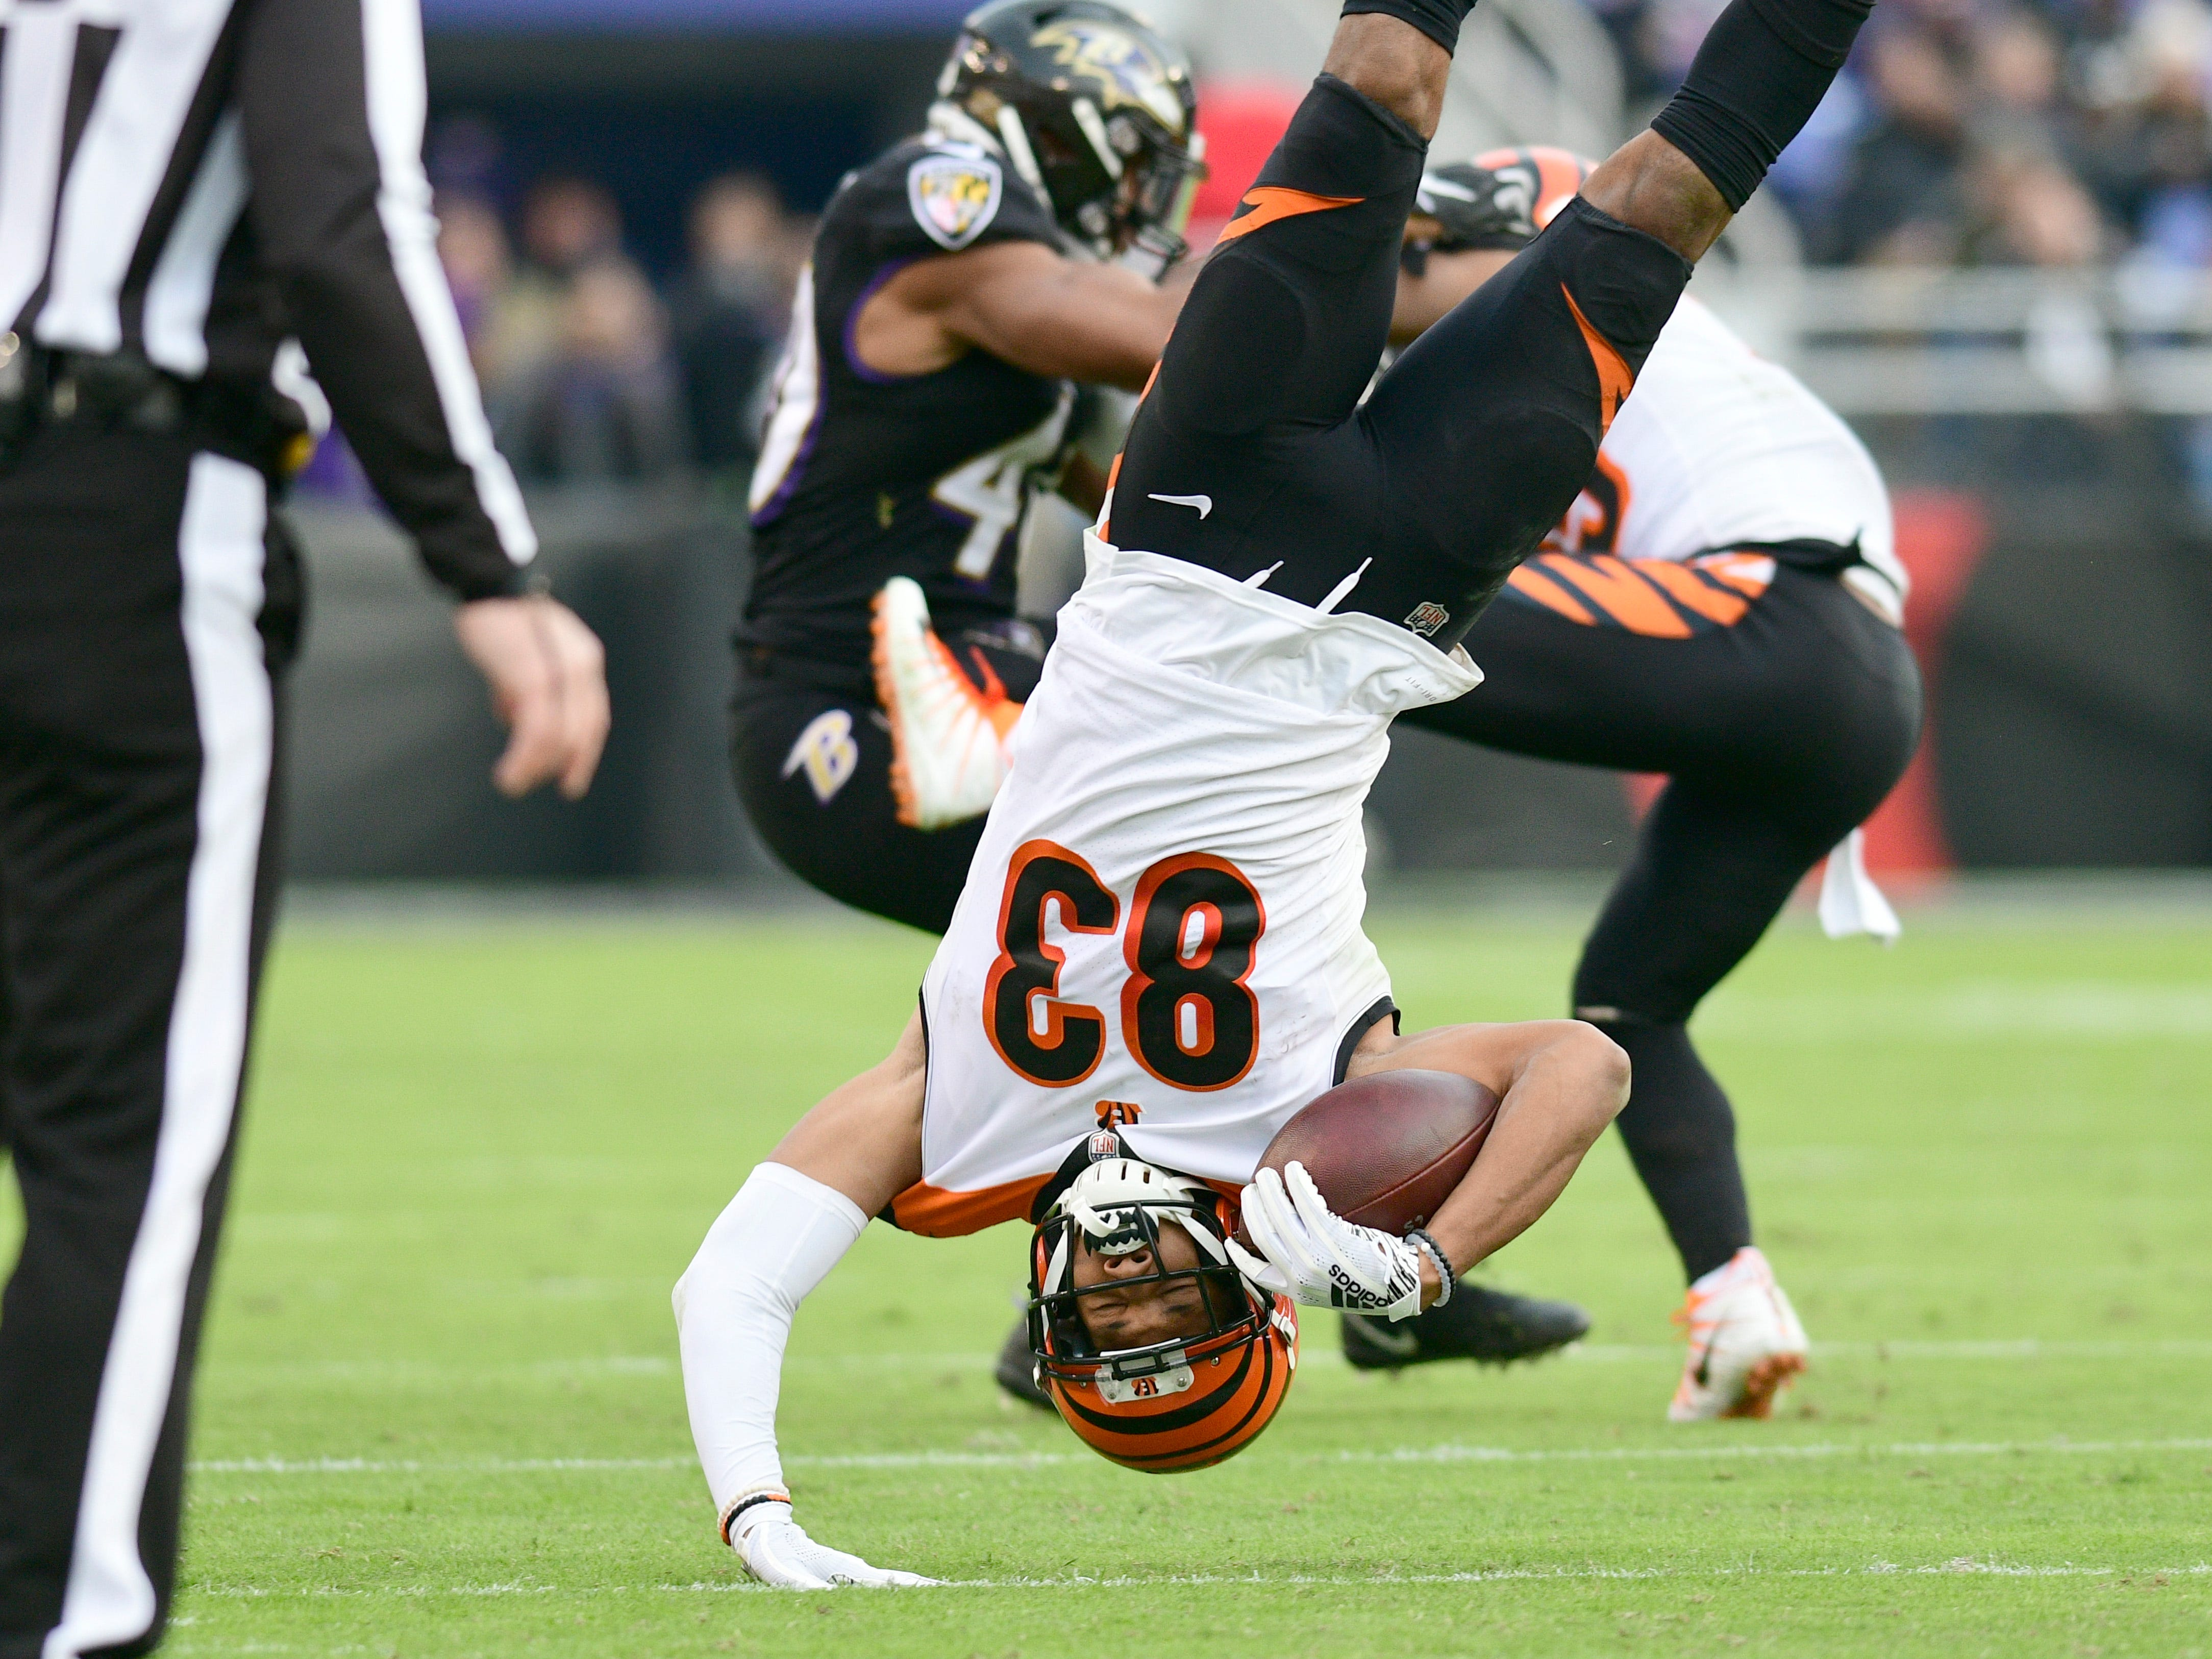 Week 11: Cincinnati Bengals wide receiver Tyler Boyd lands after a reception against the Baltimore Ravens  at M&T Bank Stadium. The Ravens won the game, 24-21.